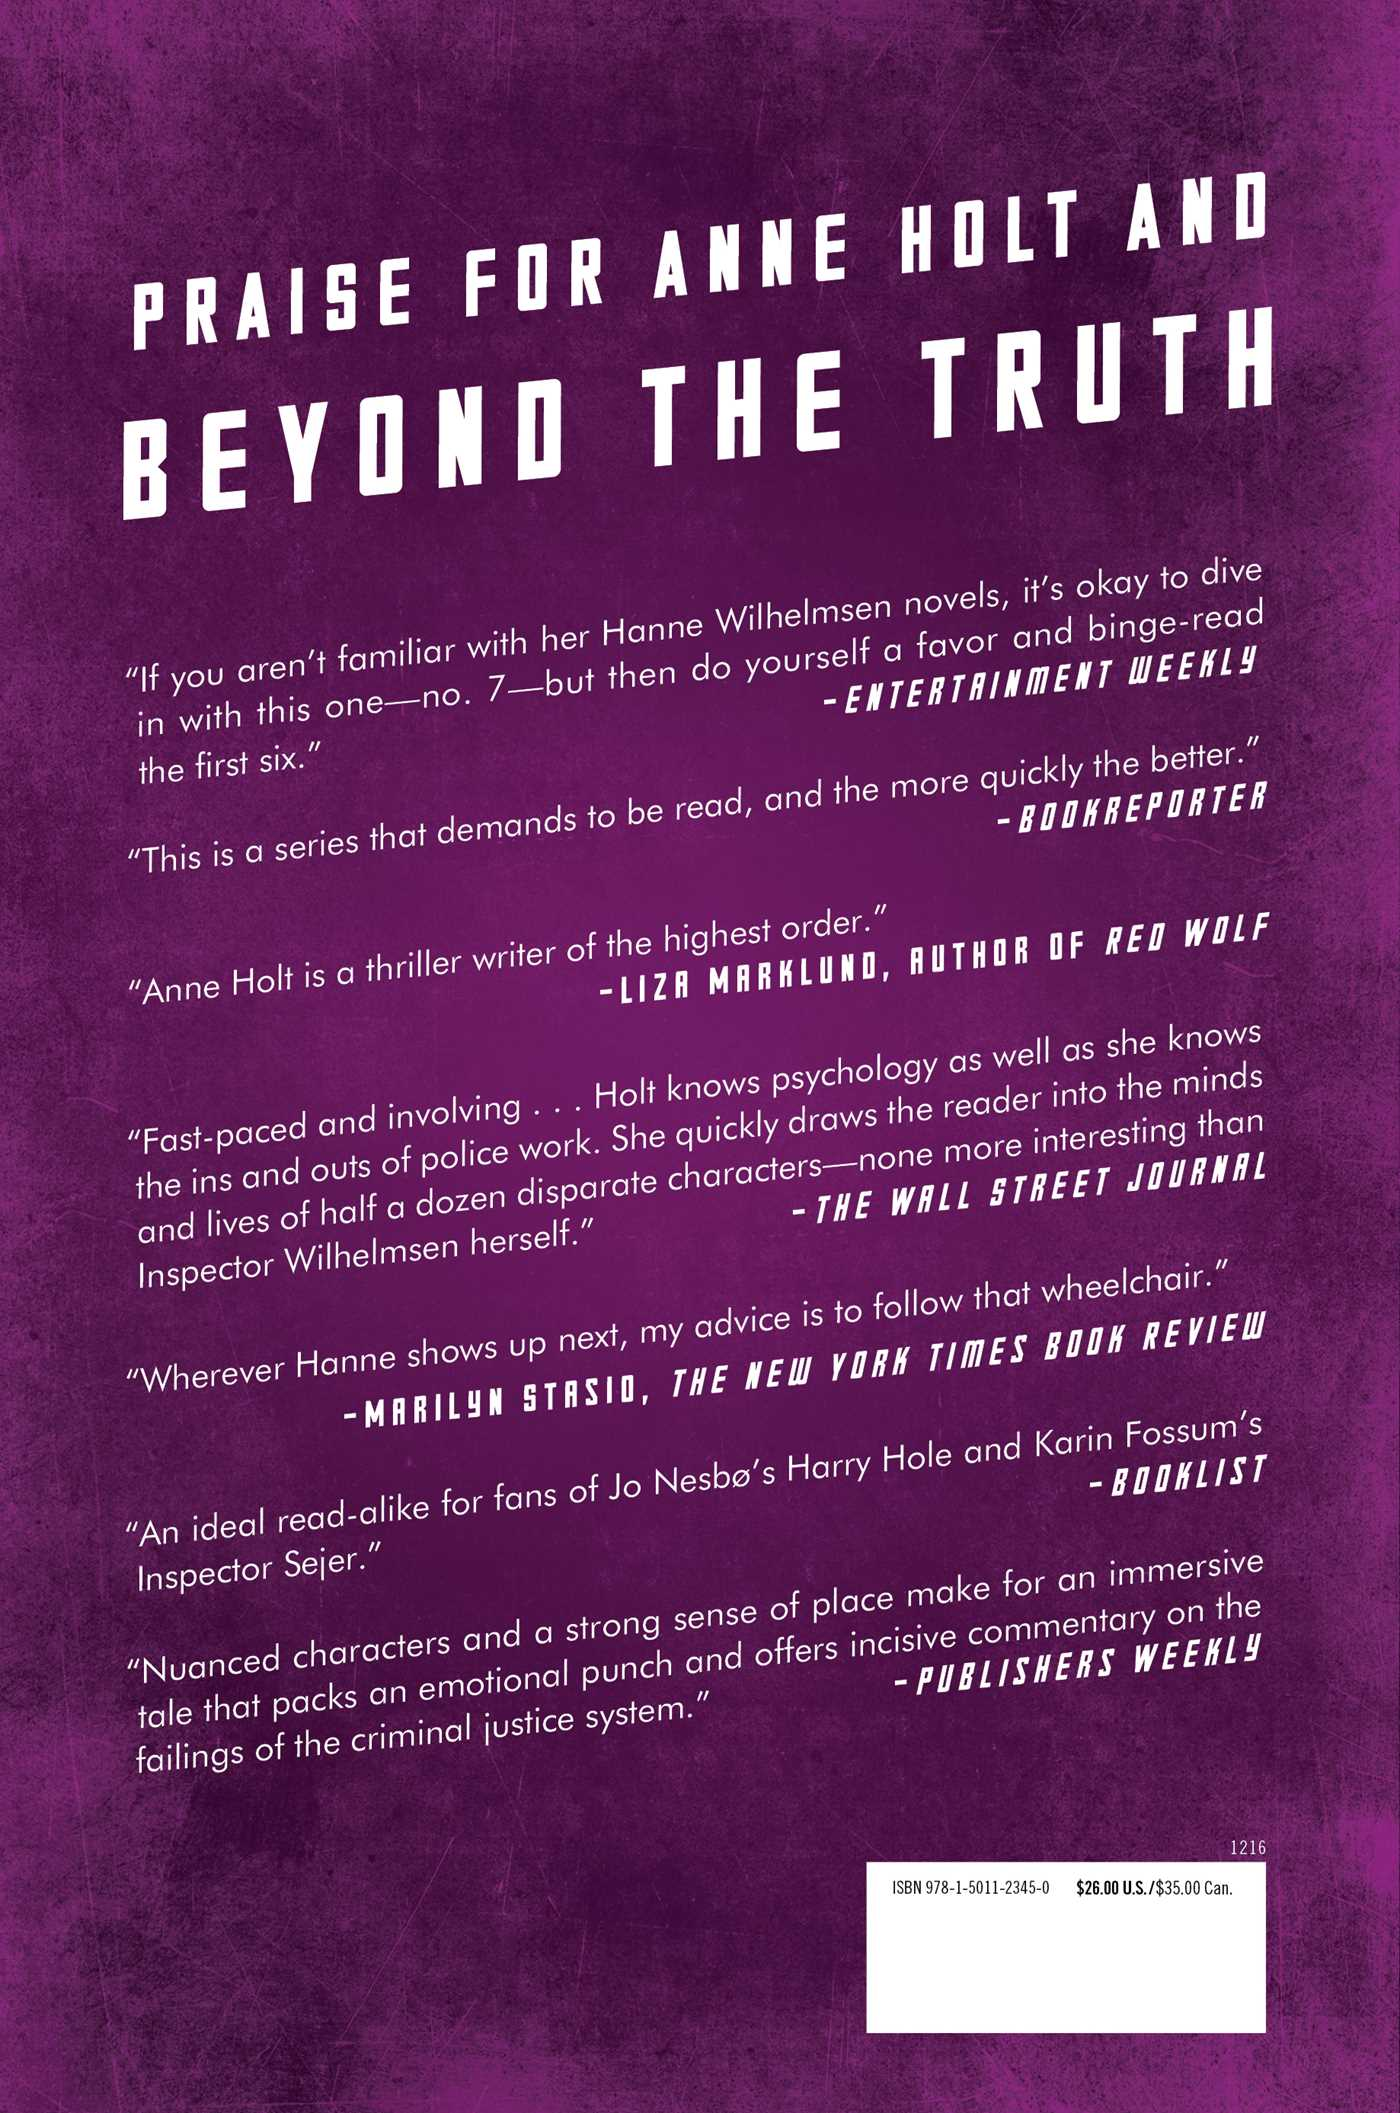 Beyond the truth 9781501123450 hr back